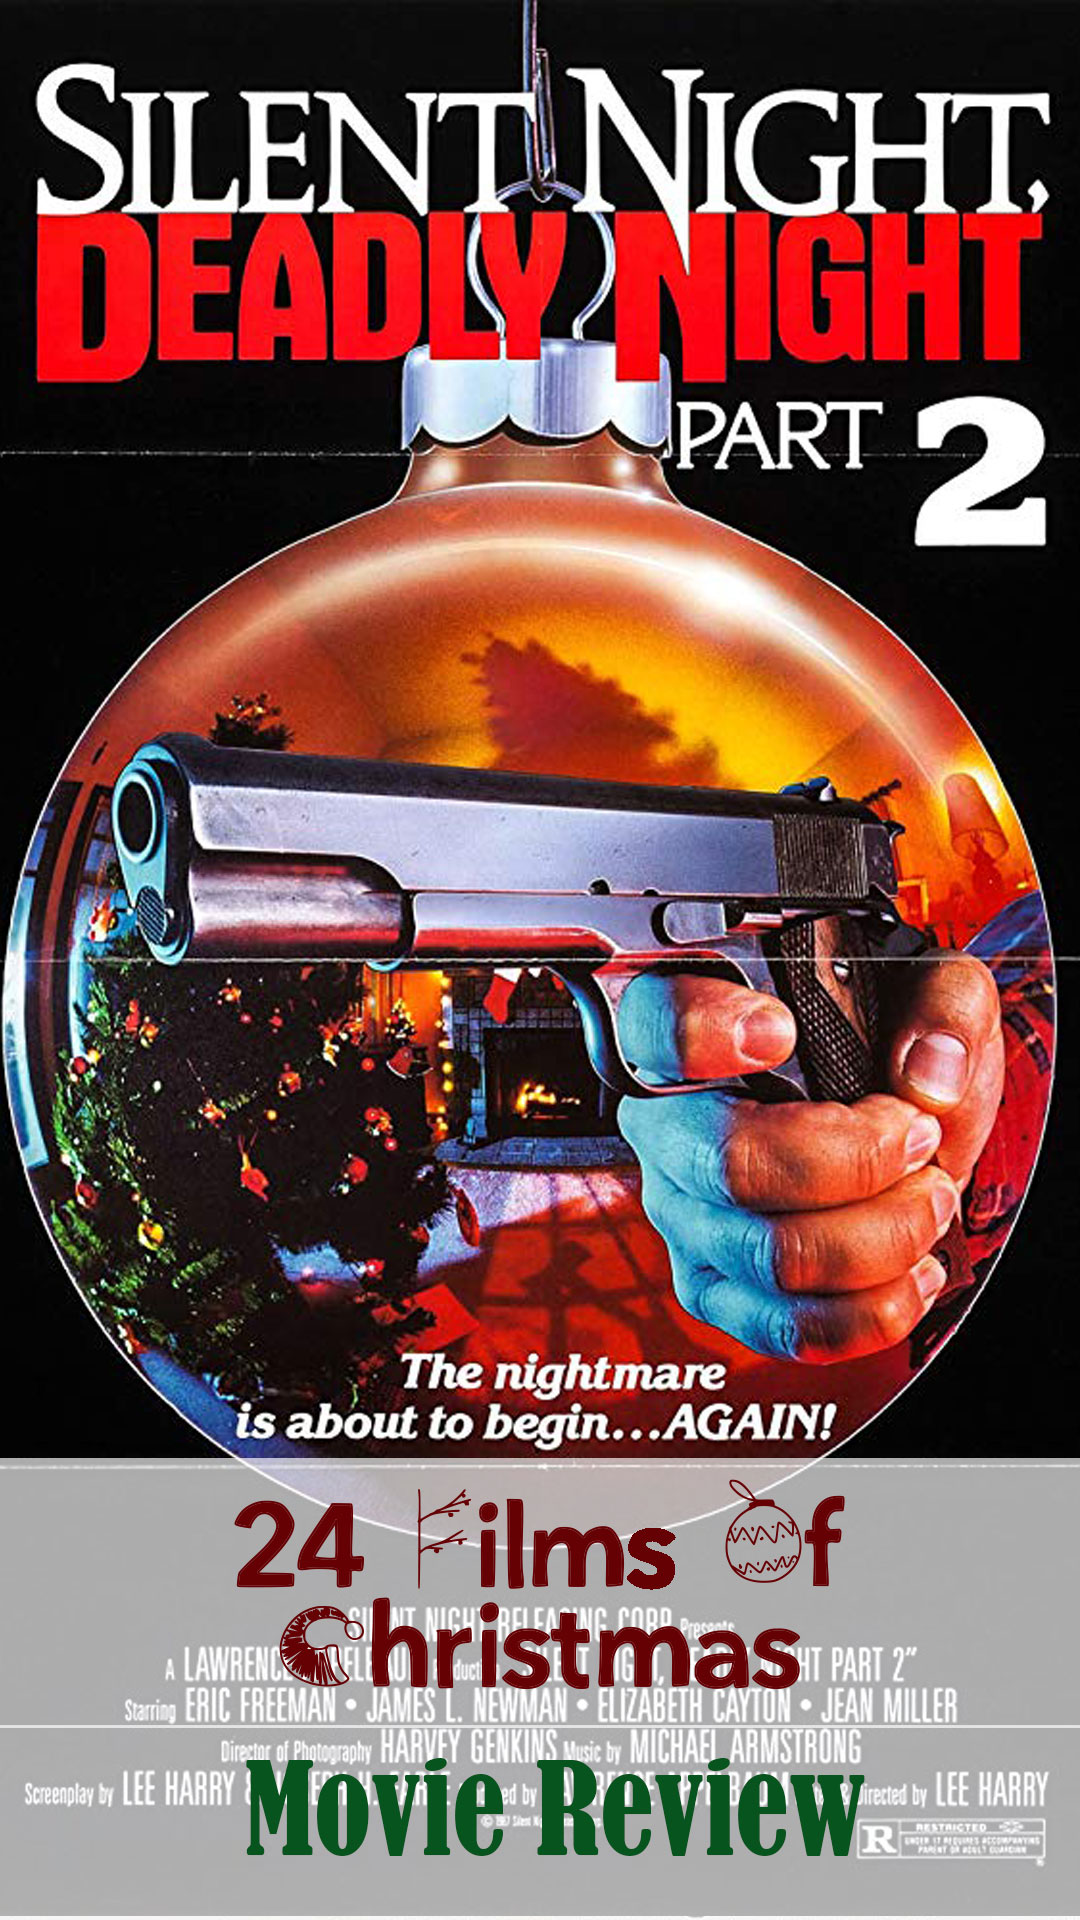 Silent Night, Deadly Night Part 2 Film Review